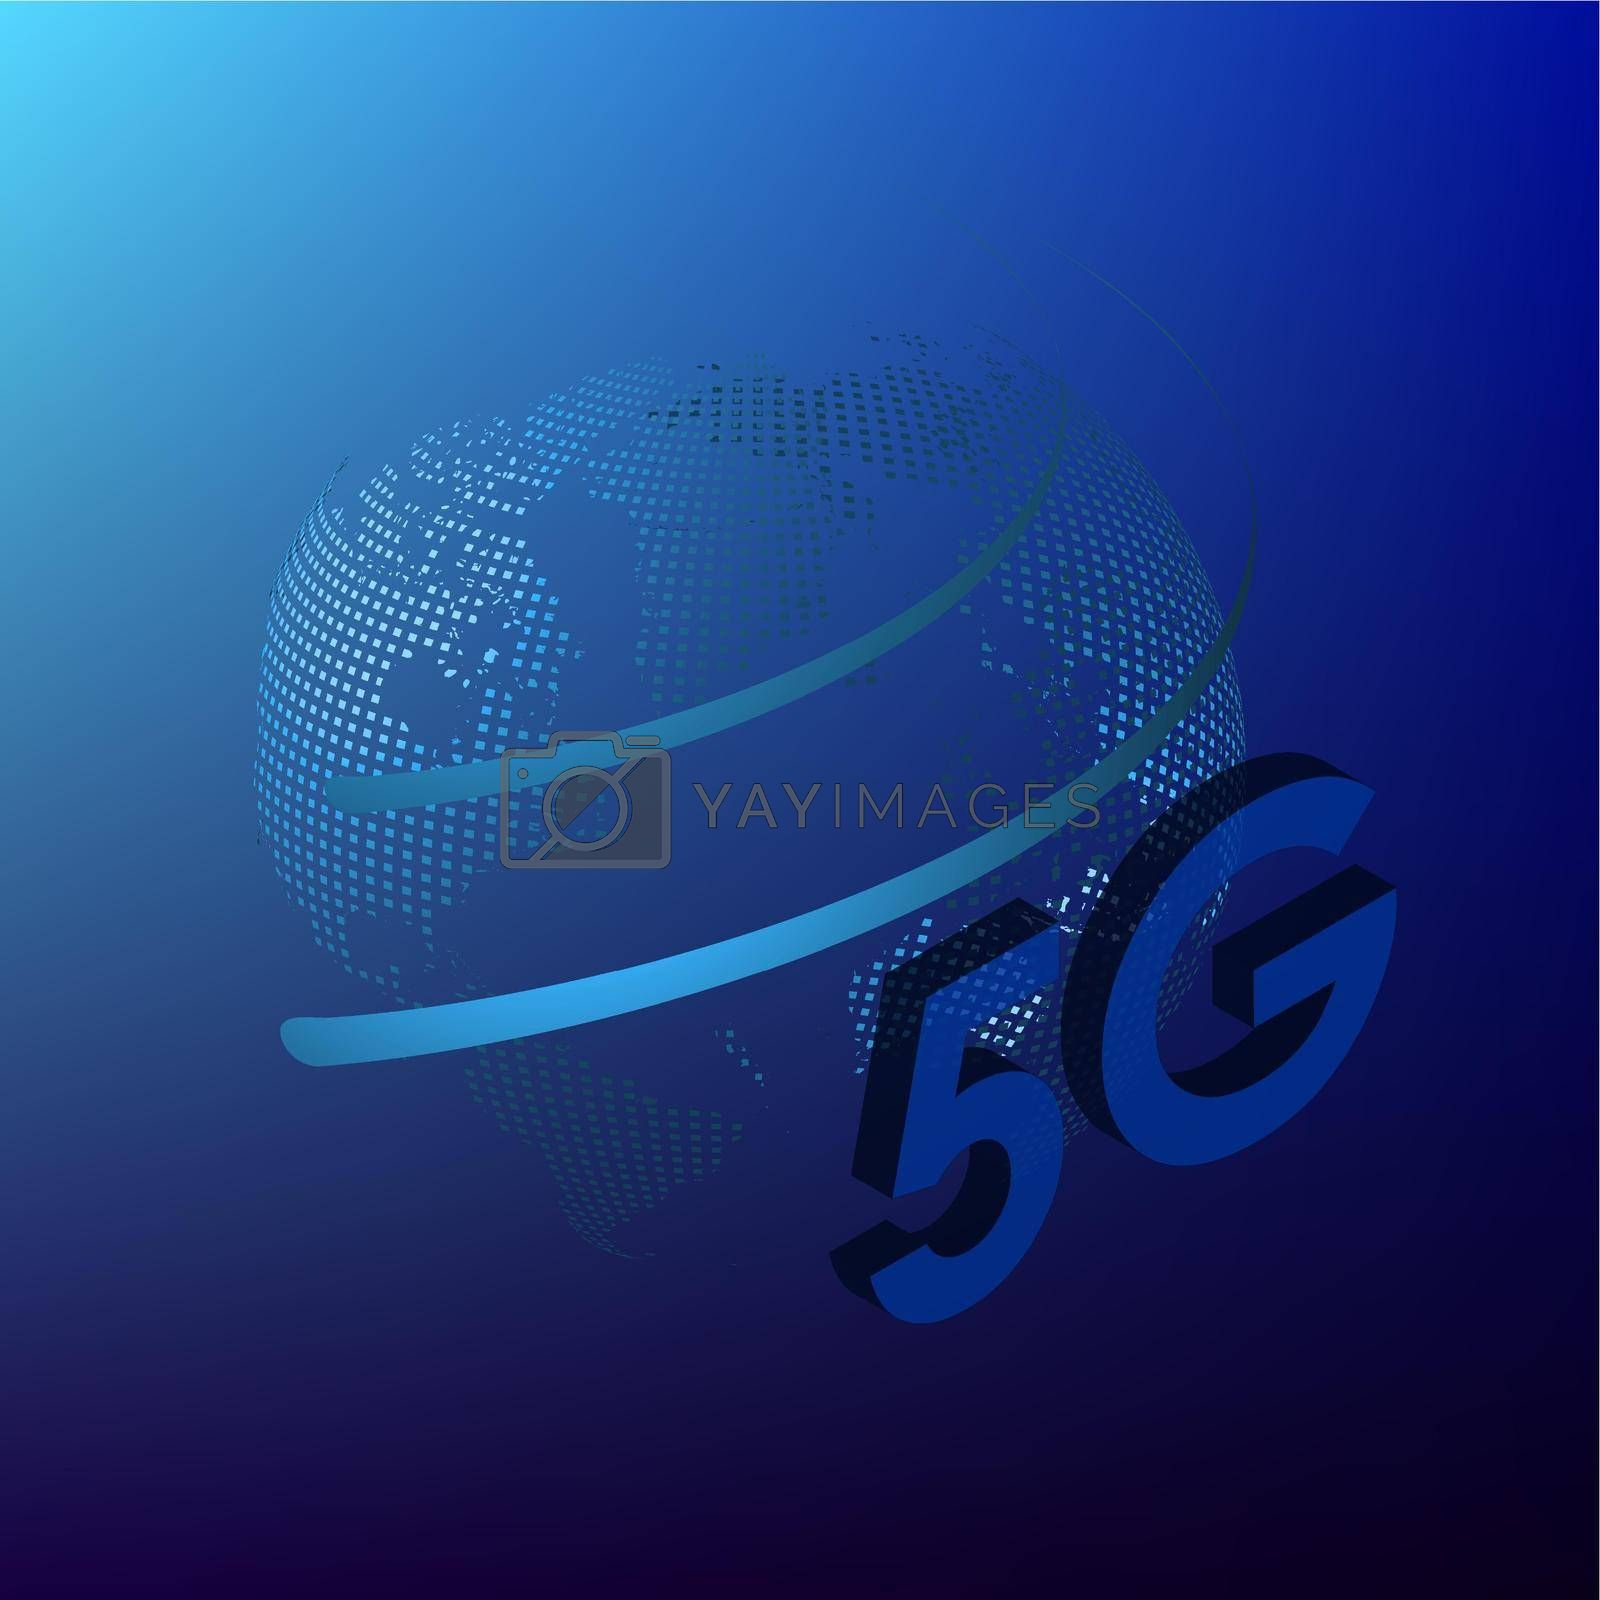 Royalty free image of 5G sign on a background of the globe in digital style. The new standard for internet connectivity. High speed network global network on blue background by RNko